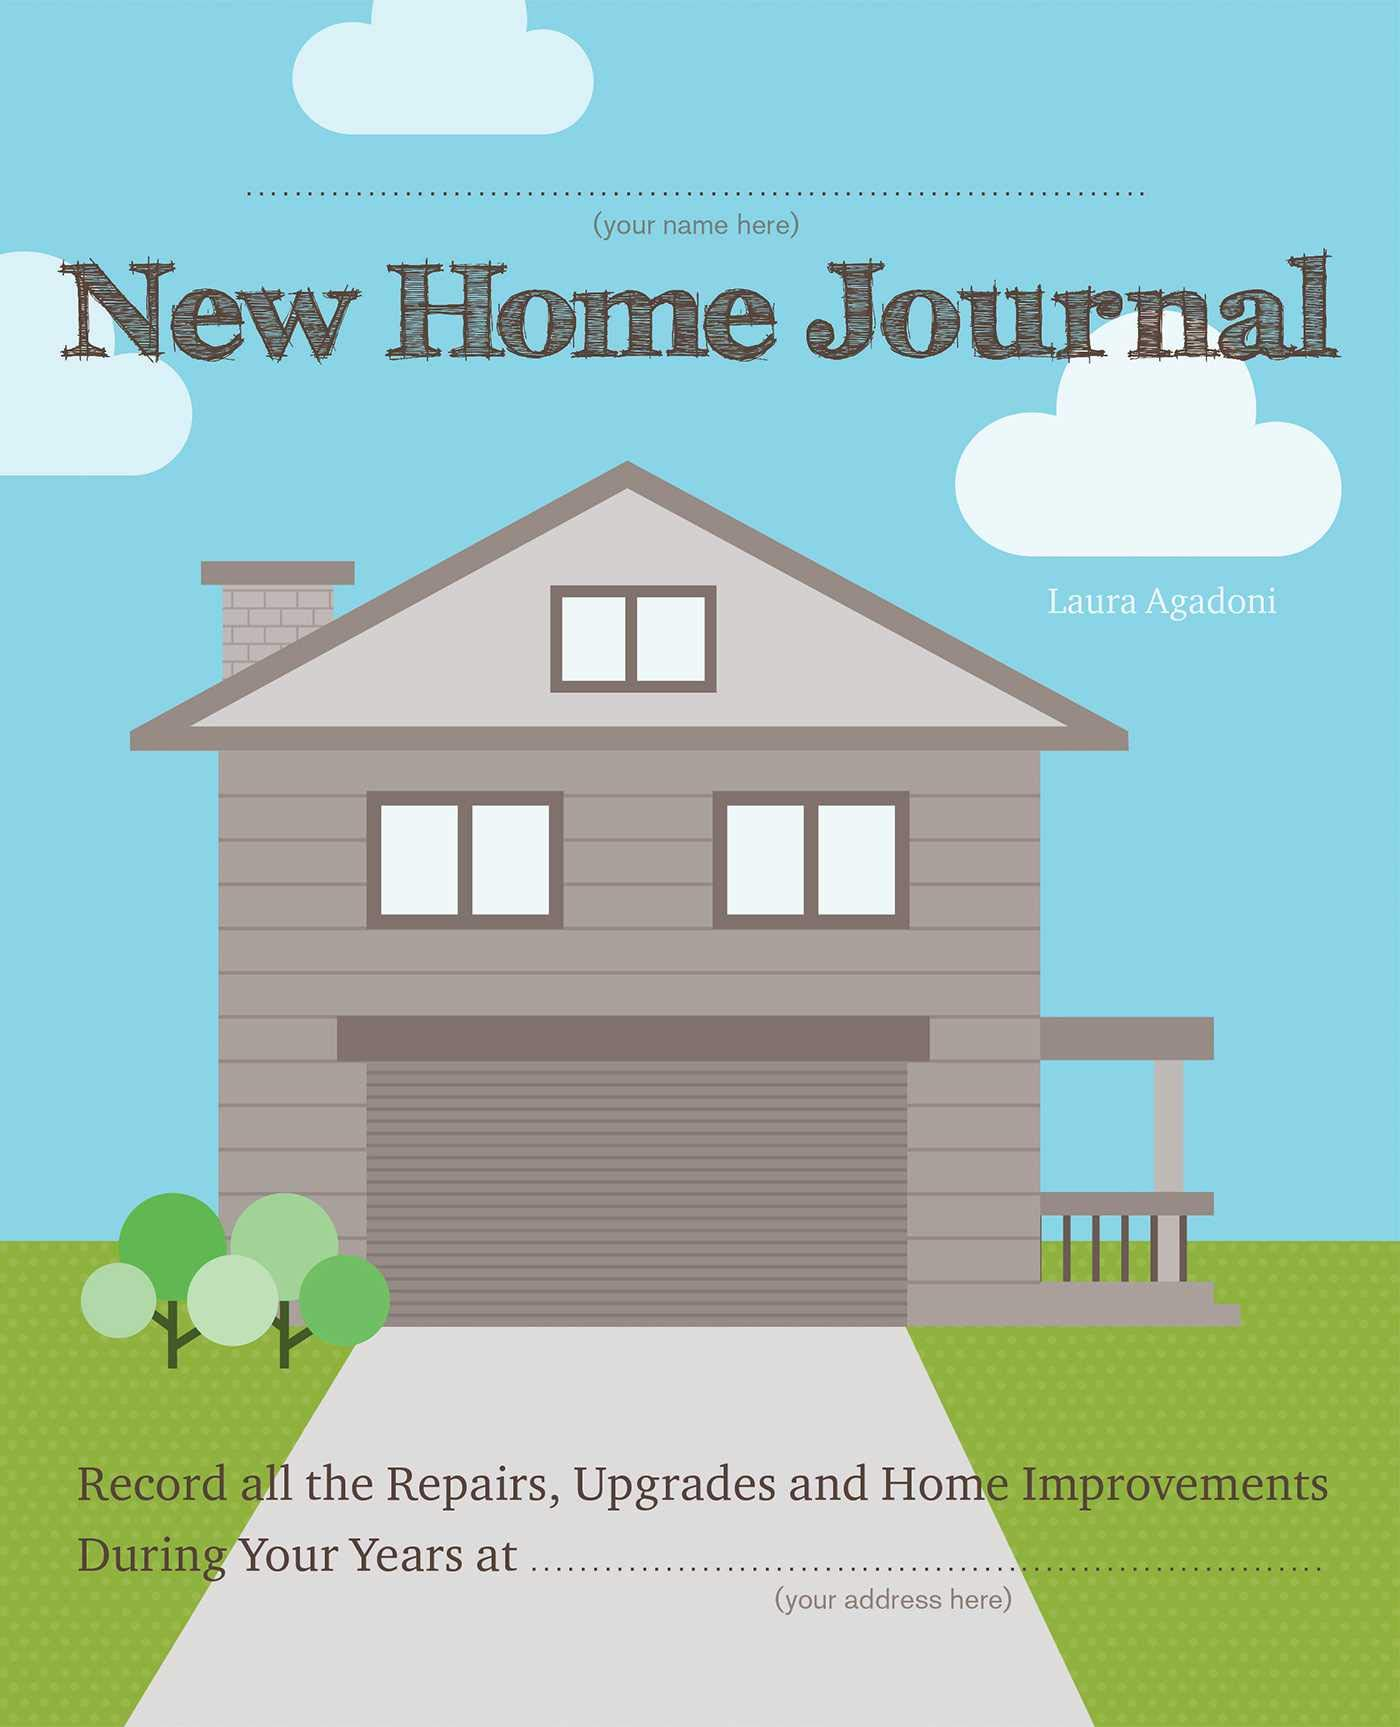 New Home Journal. Record all the repairs, upgrades and home improvements during your years.